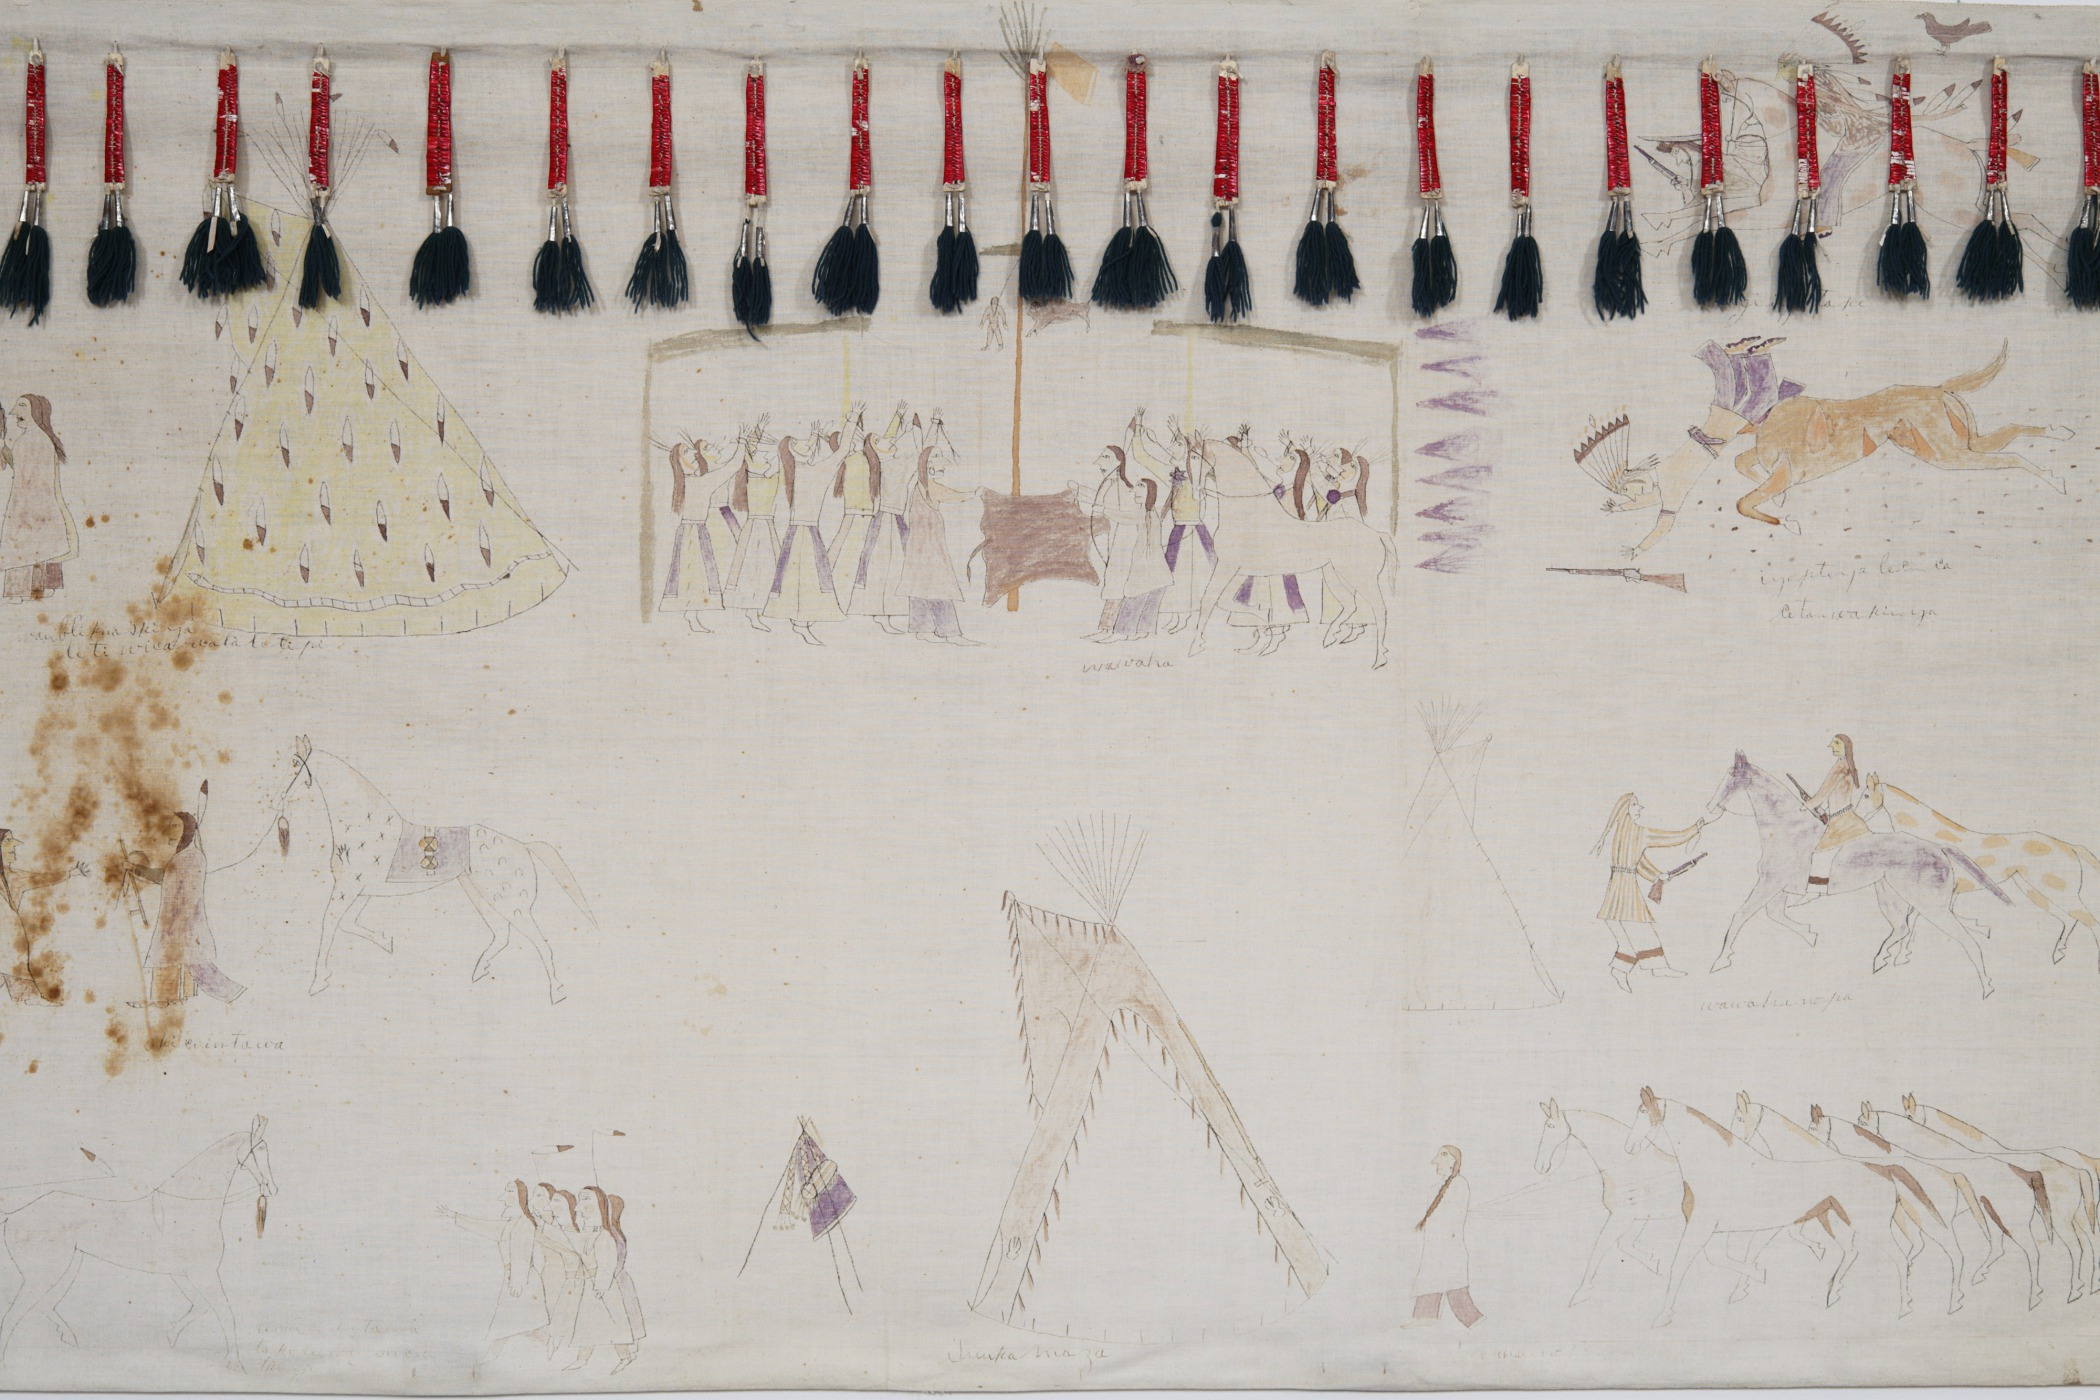 Hunkpapa Lakota, tipi liner depicting Cehupa's (Jaw) exploits, about 1910. Muslin, paint, porcupine quills, rawhide, native-tanned hide, cotton cloth, tin cones, dye, wool yarn, ink, string, and thread, 34 13/16 × 147 1/4 in. Hood Museum of Art, Dartmouth College: Purchased through the Mrs. Harvey P. Hood W'18 Fund; 2009.10.